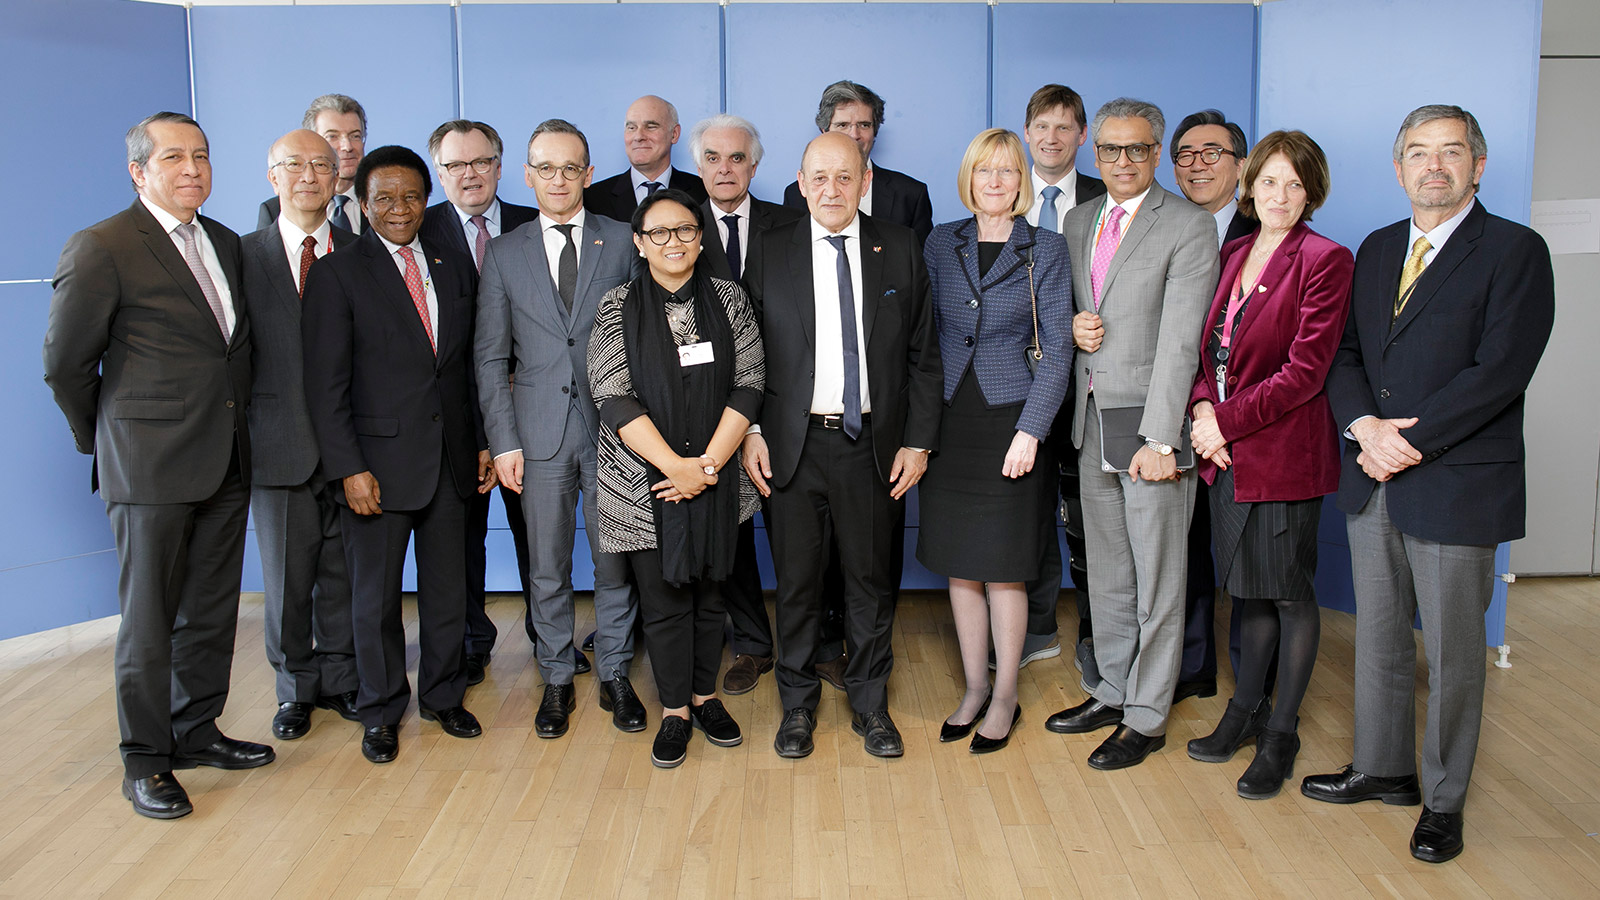 Foreign Minister of Germany, France and Indonesia pose for a group picture with several Ambassadors to the UN against a blue back-drop.